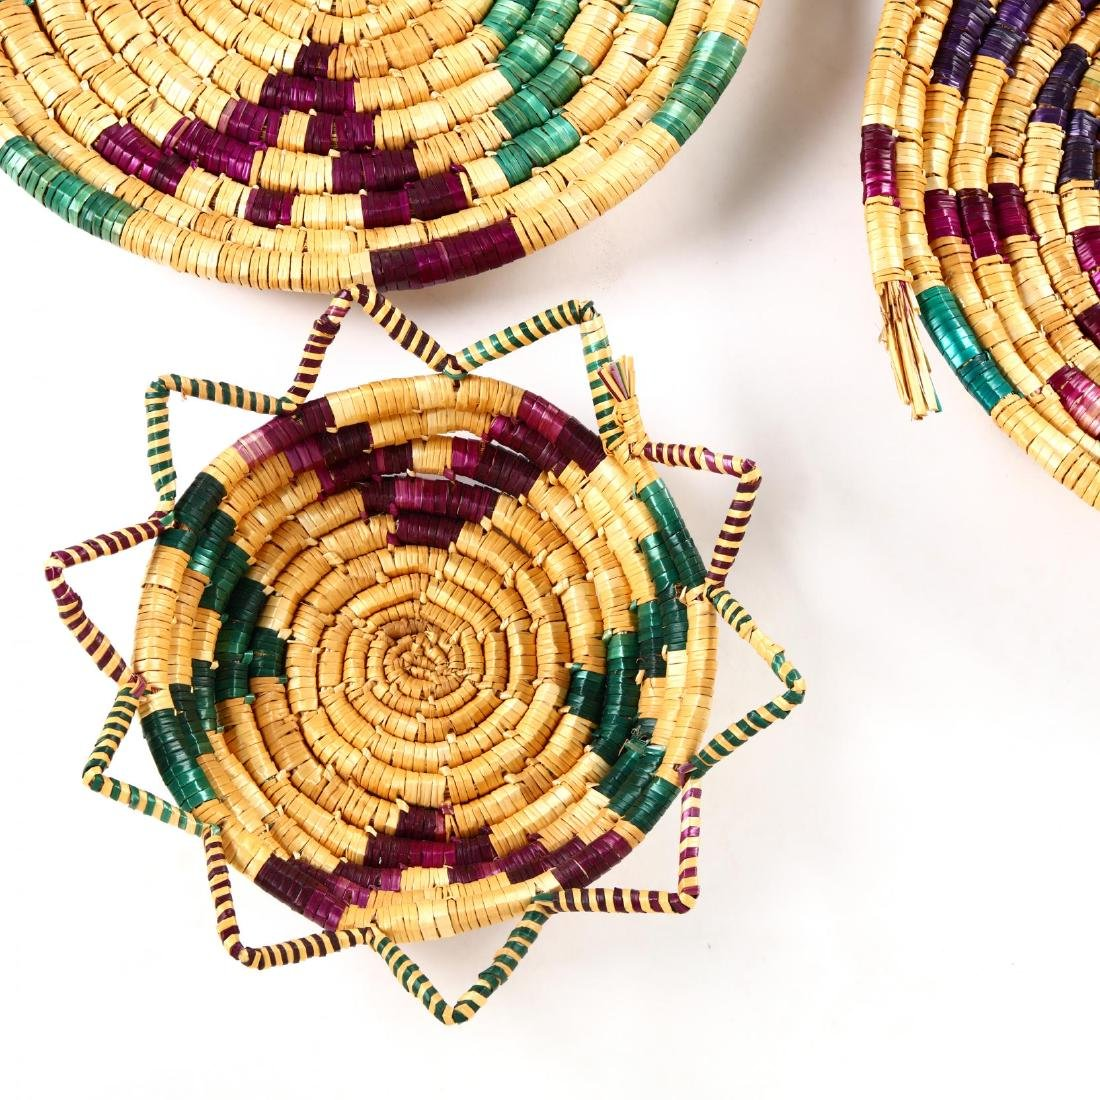 Set of Decorative Woven Straw Table Mats - 5